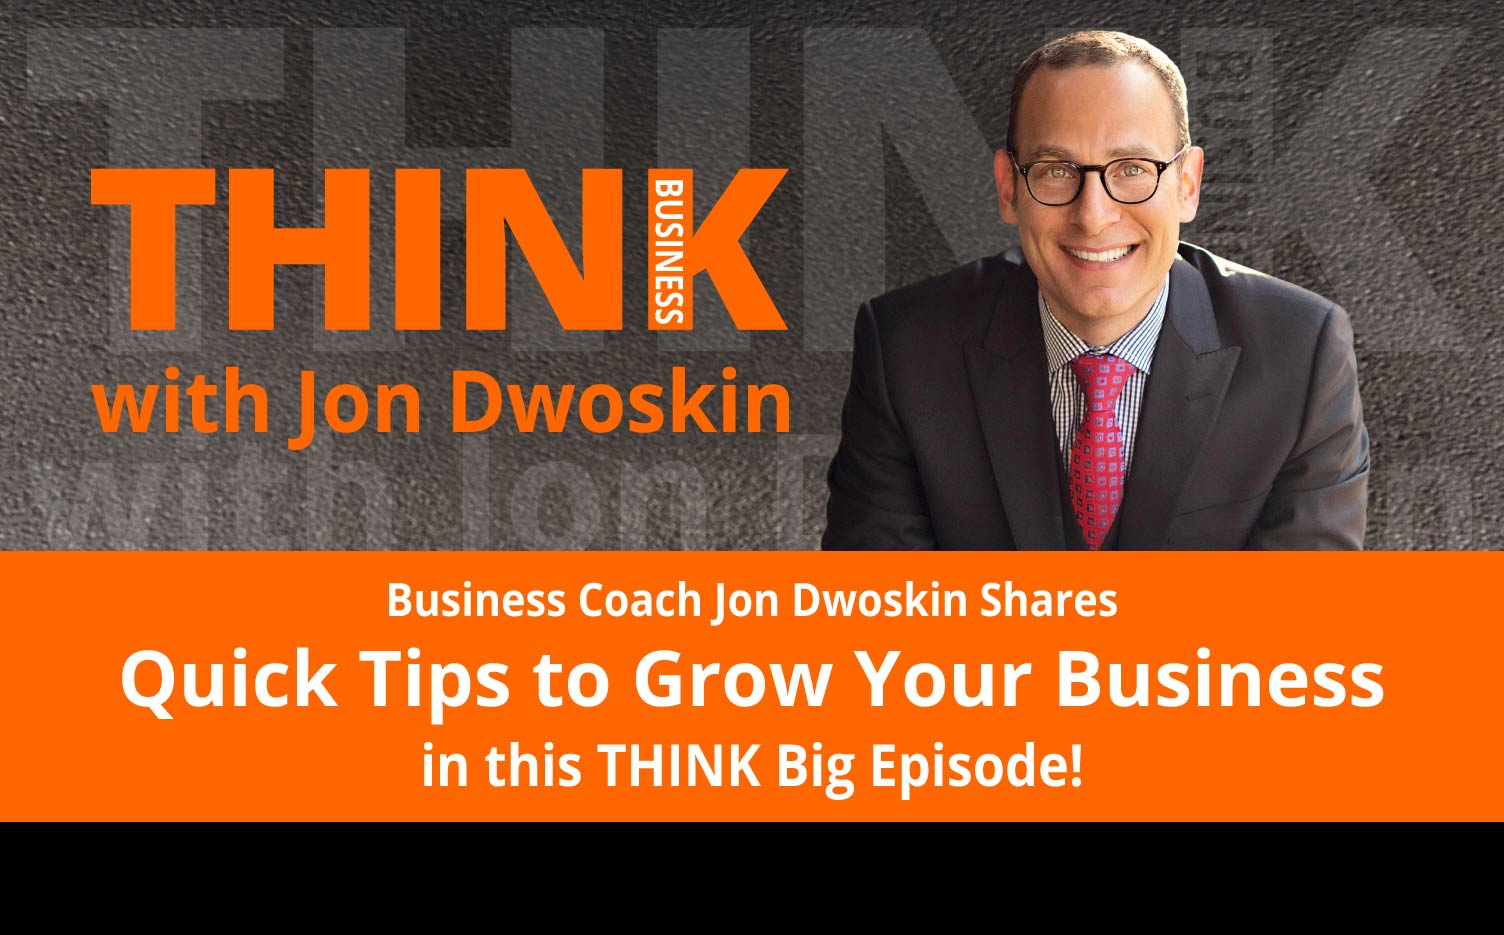 THINK Business Podcast: Today's Quick Tip: Take Executive Time